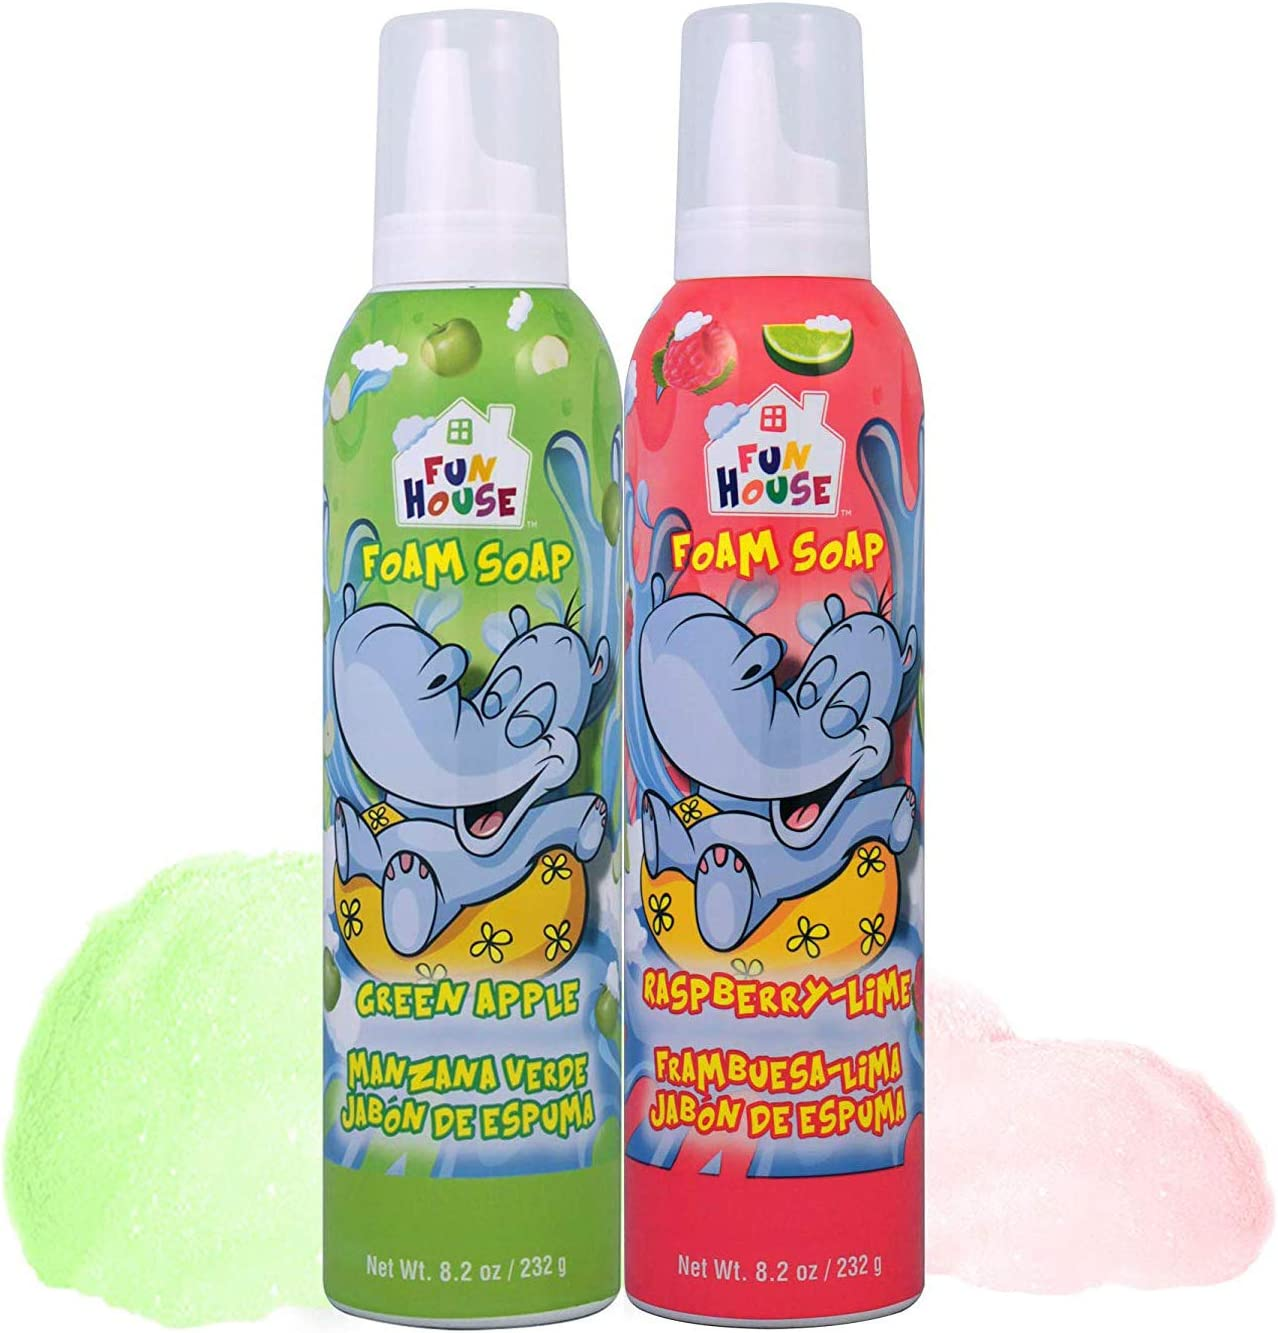 Moneysworth & Best Fun House Kids Foam Soap Green Apple & Raspberry-Lime, 2 Pack